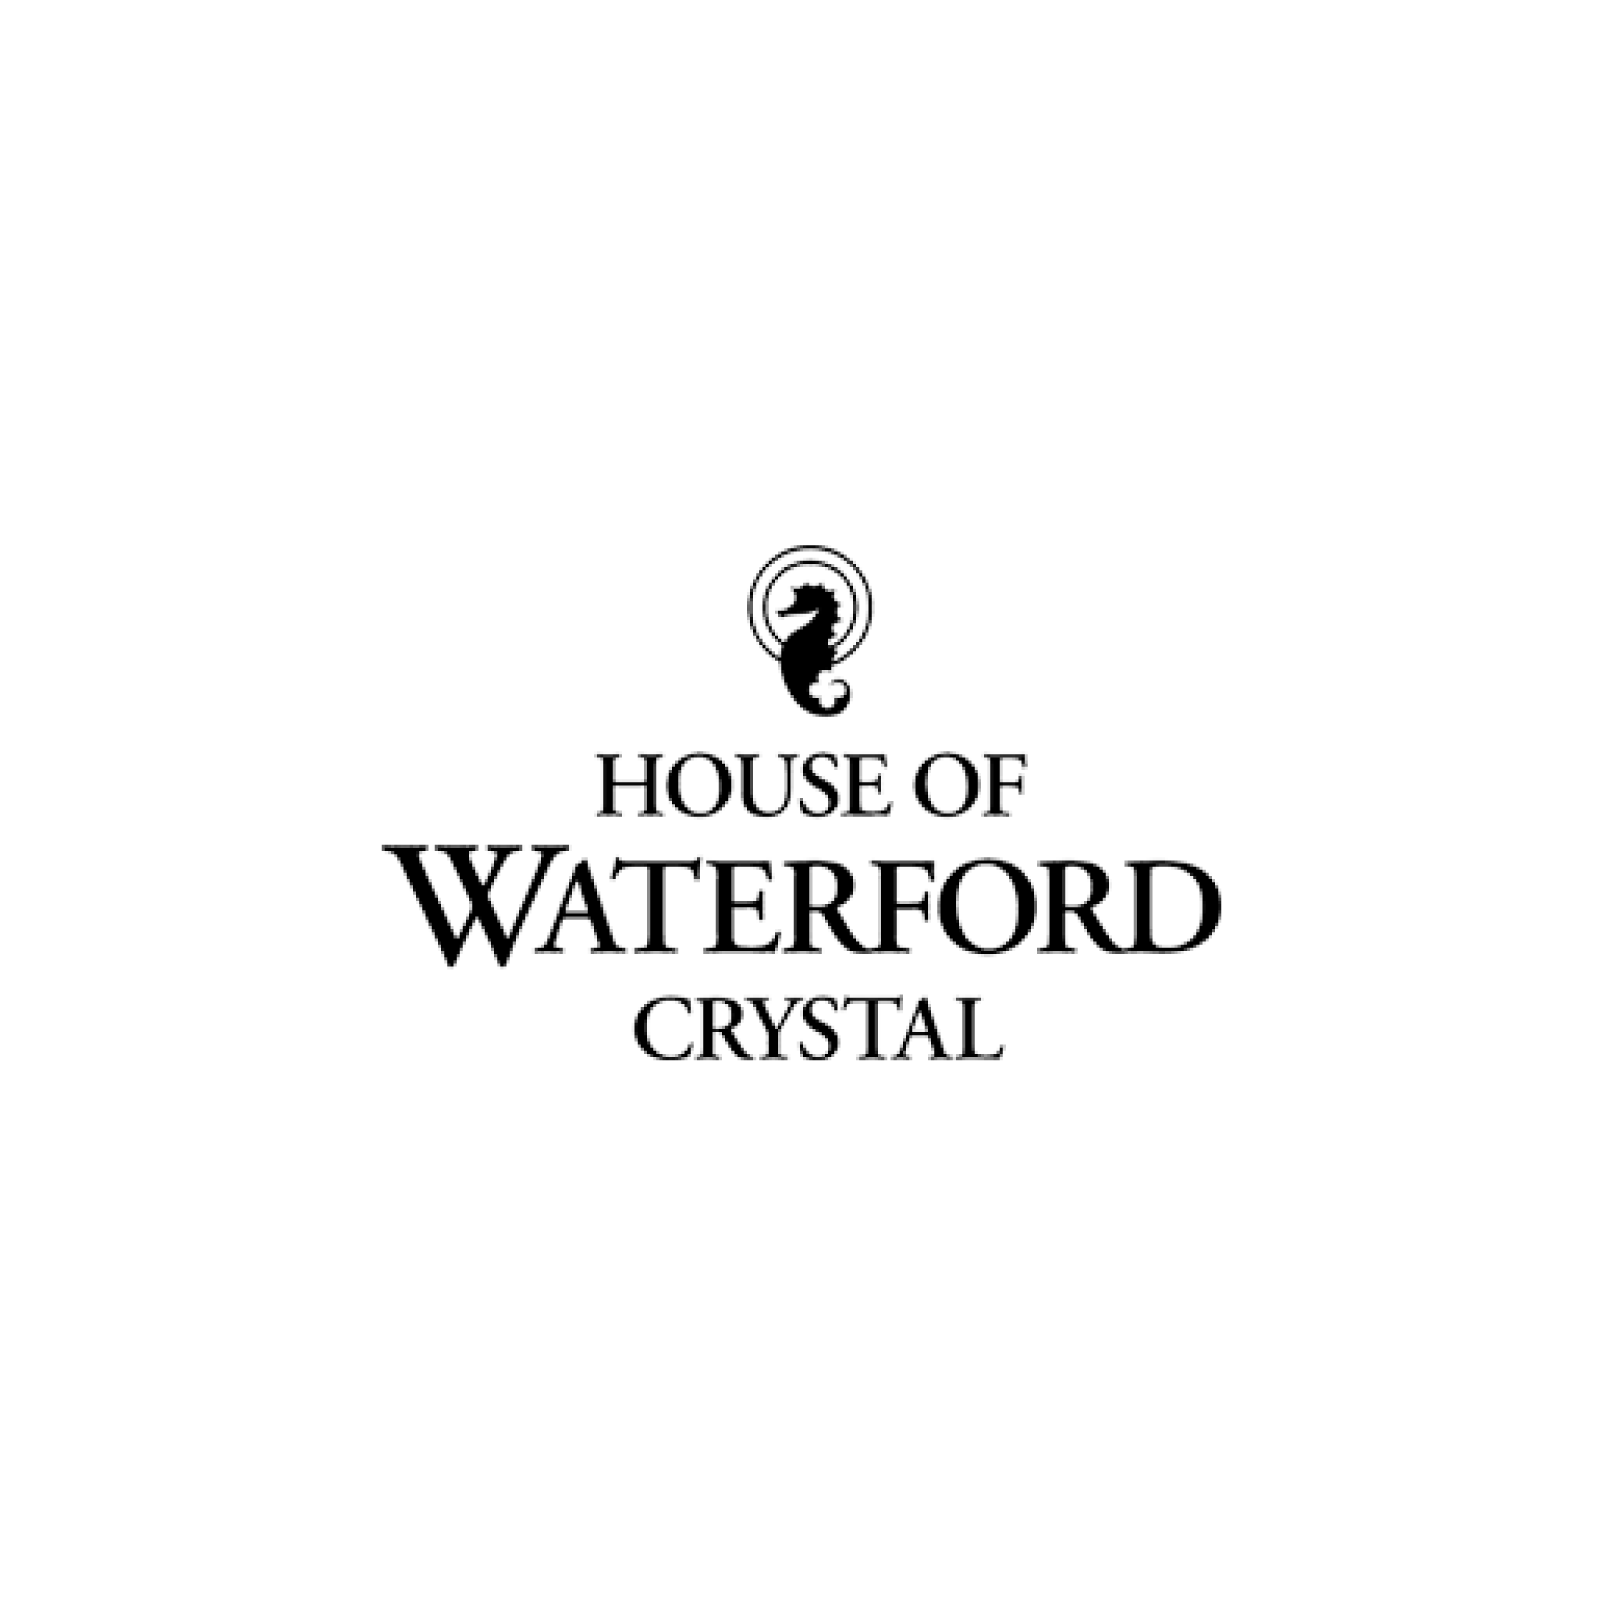 House of Waterford Crystals